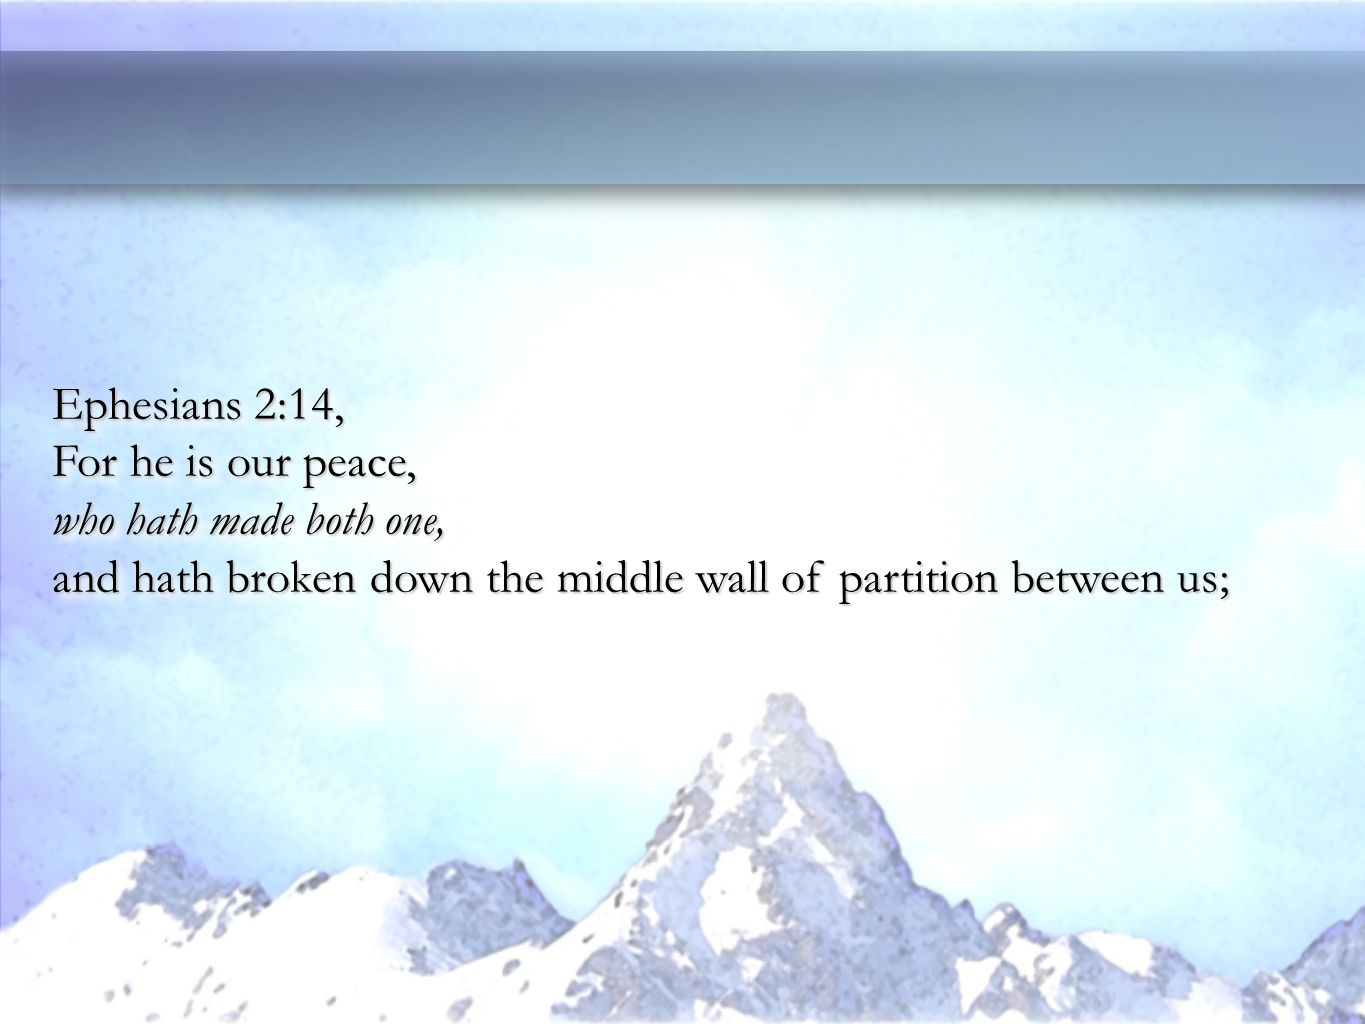 Ephesians 2:14, For he is our peace, who hath made both one, and hath broken down the middle wall of partition between us; Ephesians 2:14, For he is our peace, who hath made both one, and hath broken down the middle wall of partition between us;